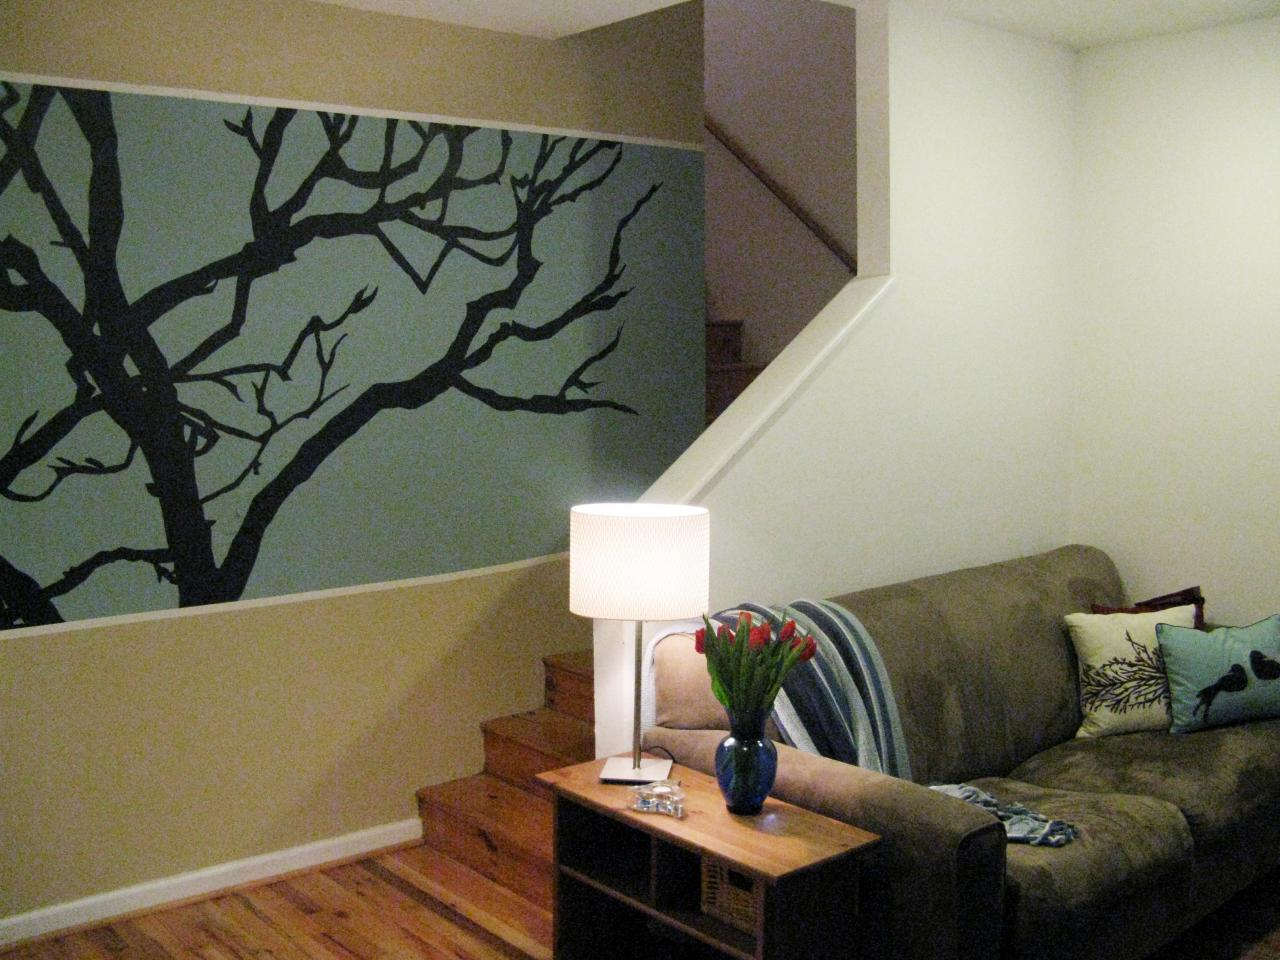 100 half day designs treetop wall mural hgtv for Best projector for mural painting